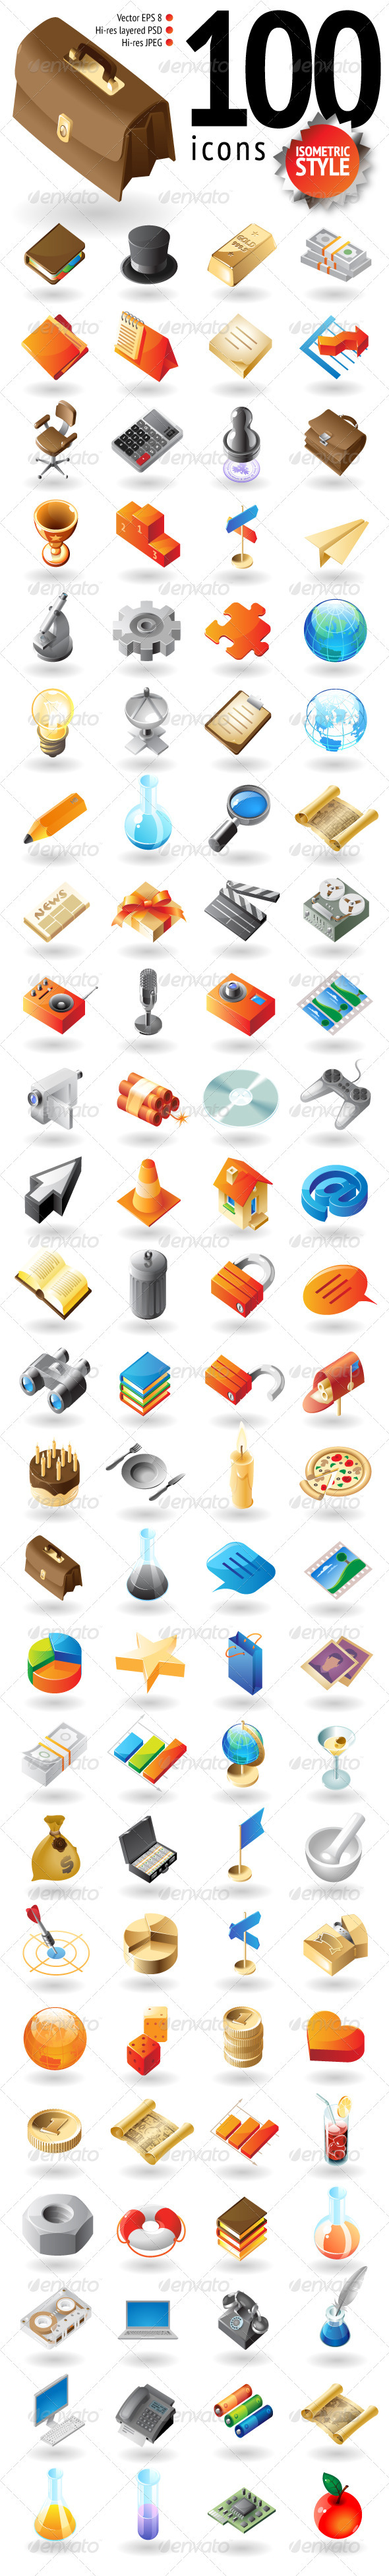 GraphicRiver 100 Isometric-Style Icons 3567173